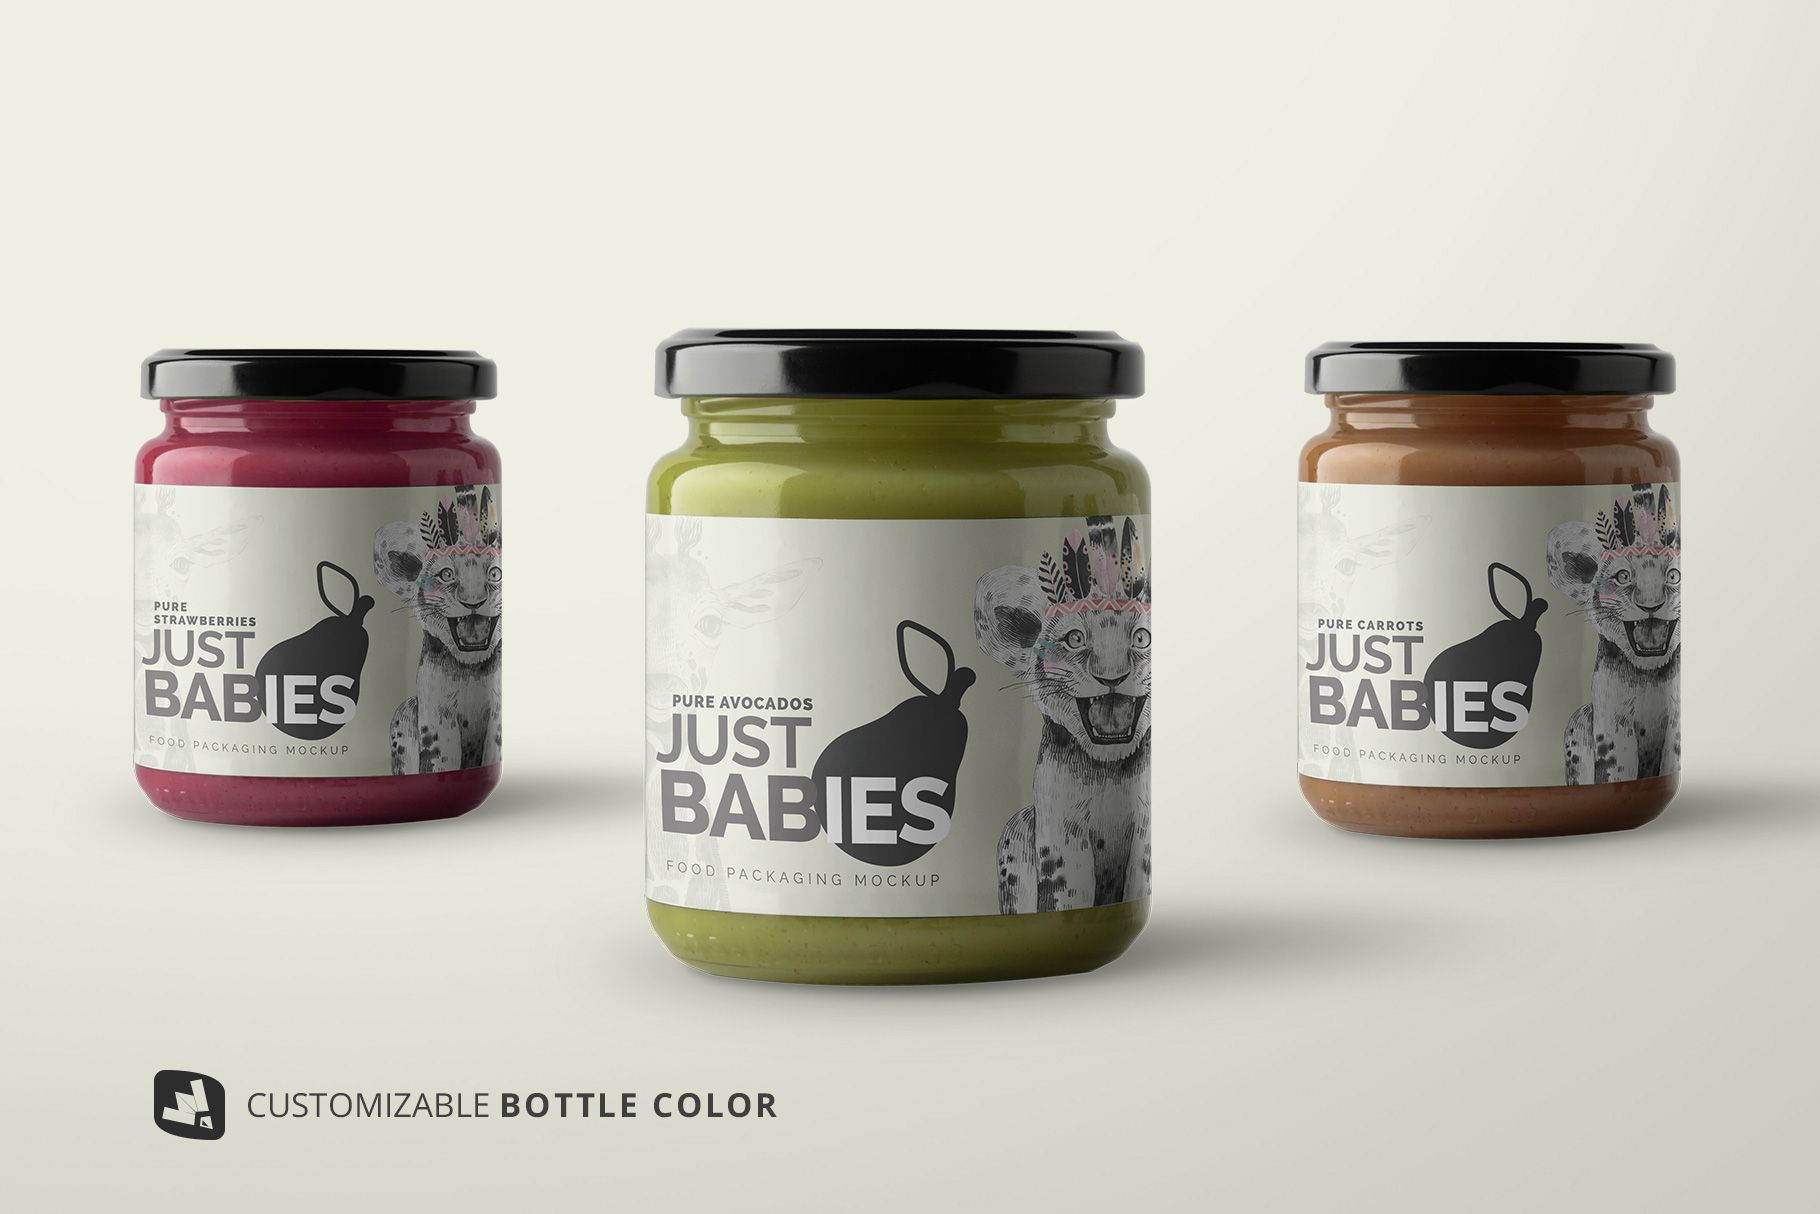 customizable bottle colors of the organic baby food packaging mockup